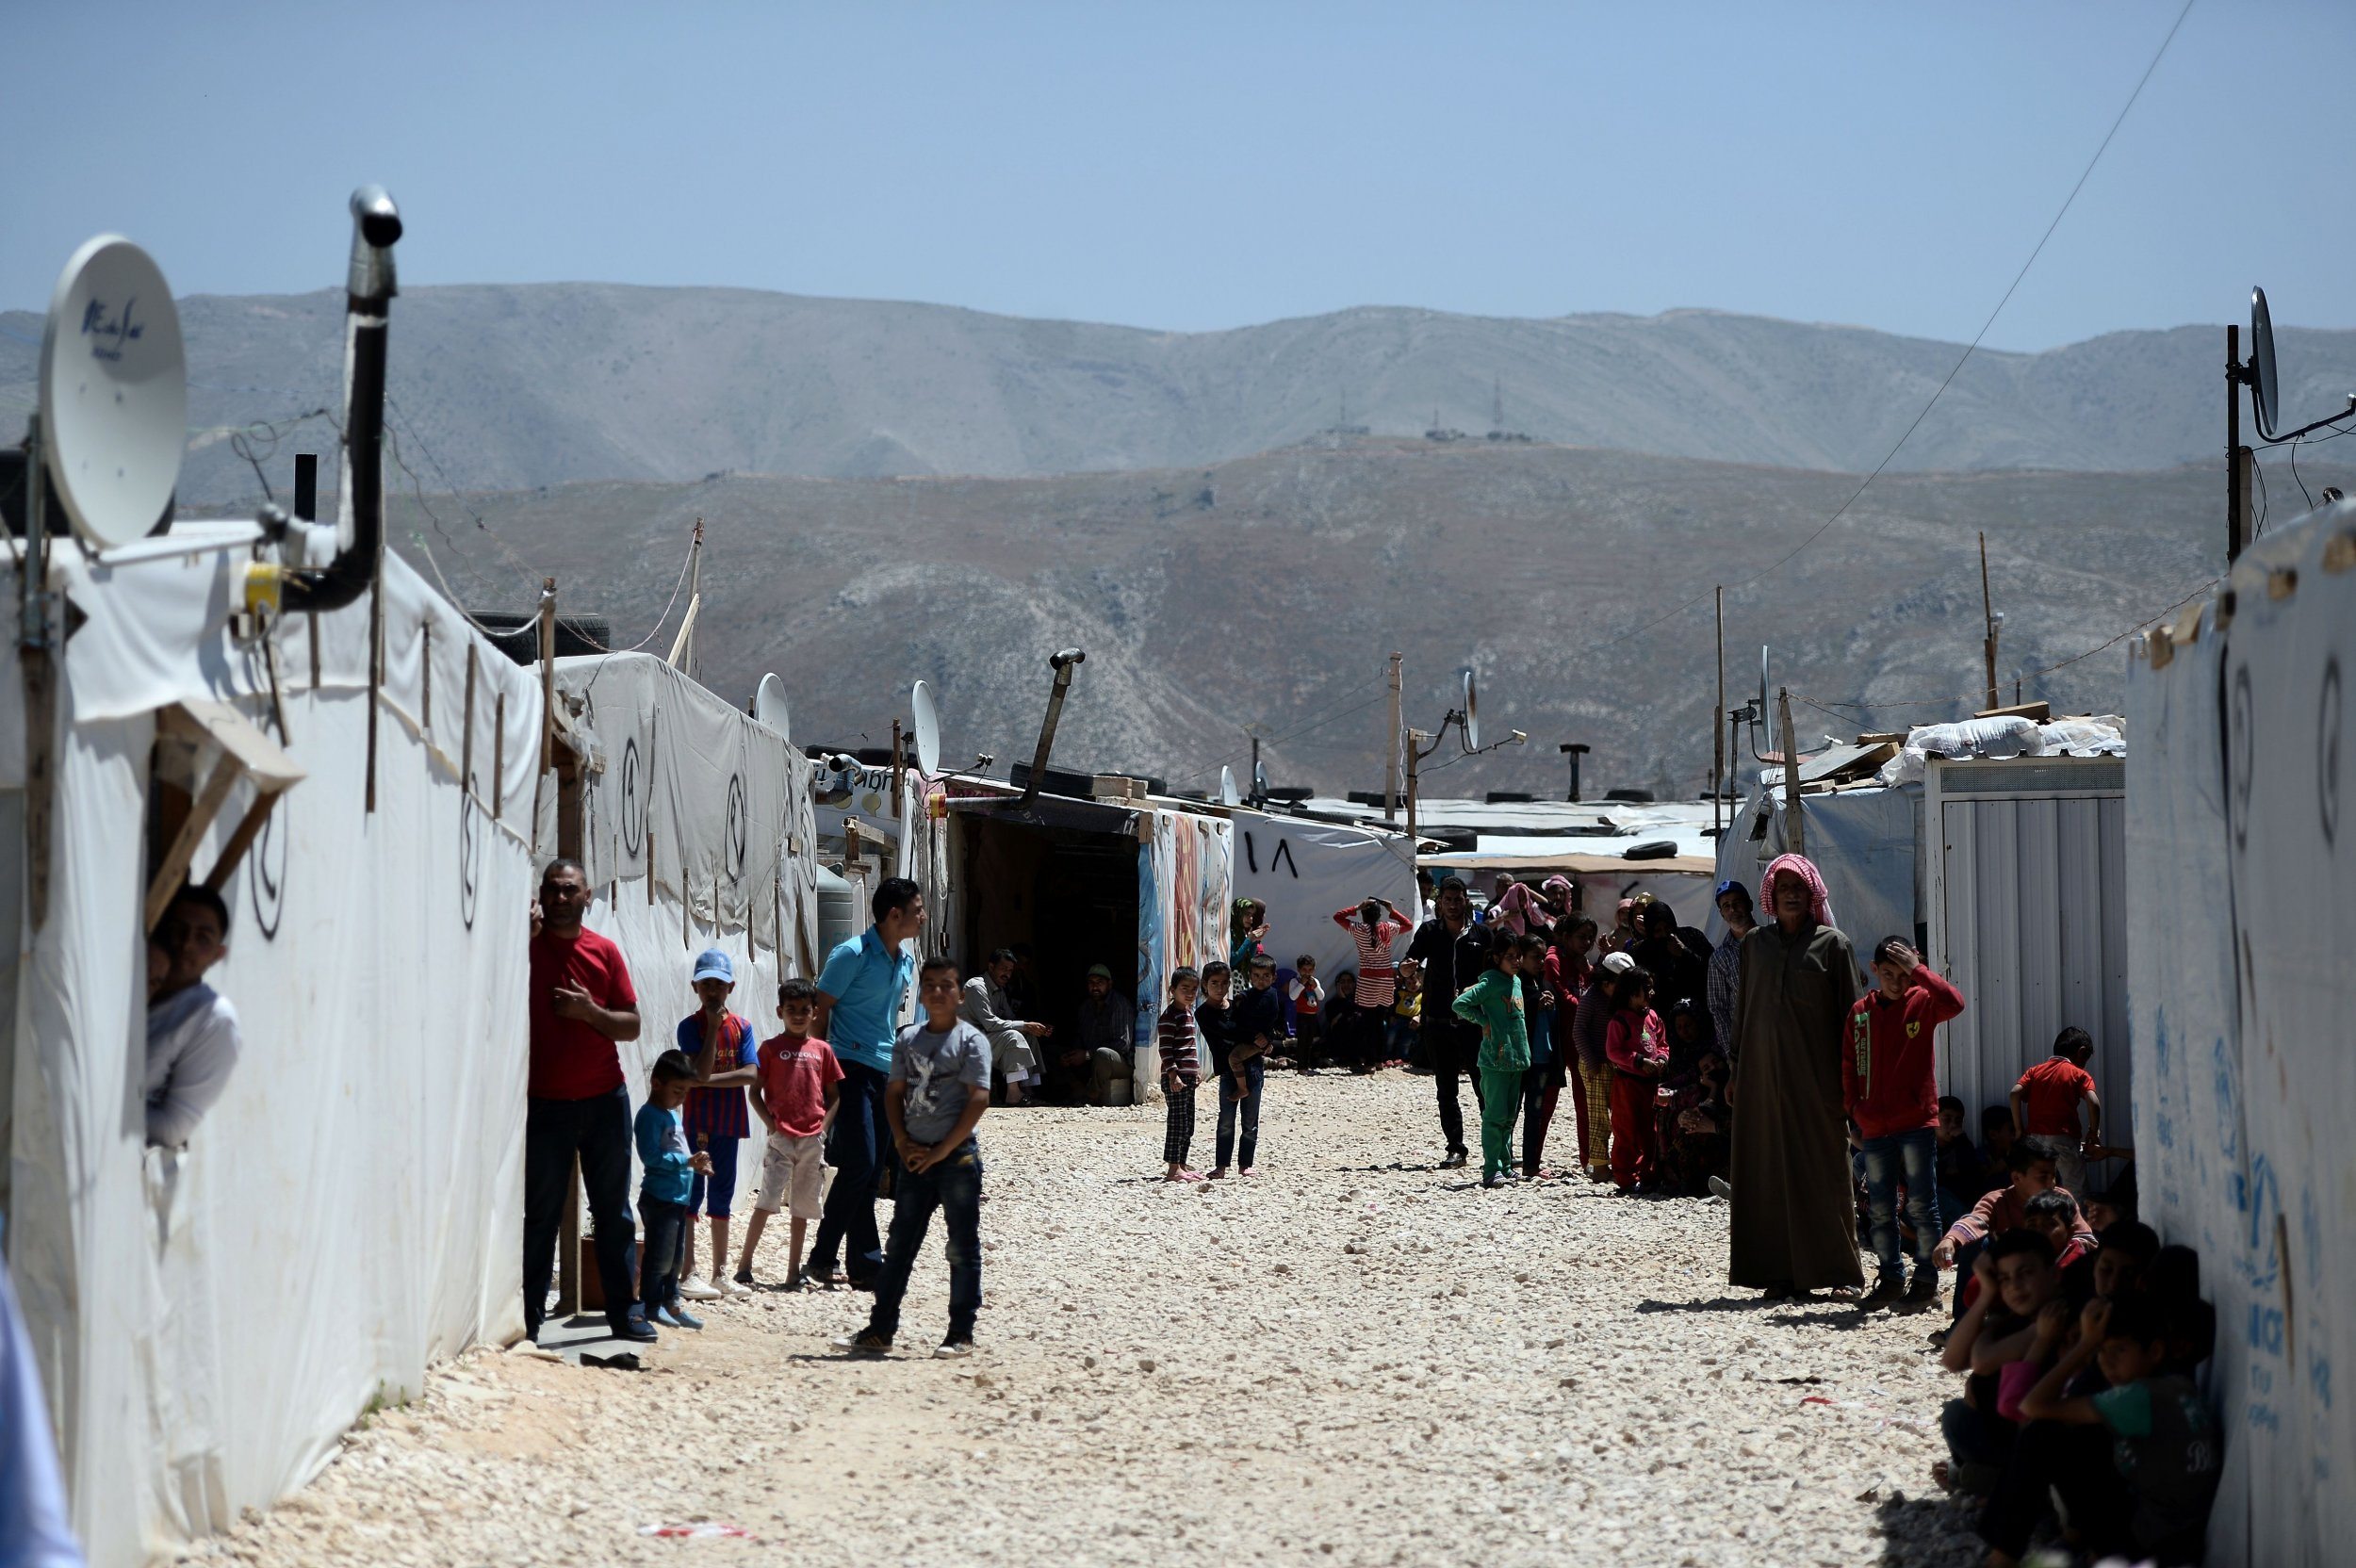 Refugee camp in Lebanon's Bekaa Valley